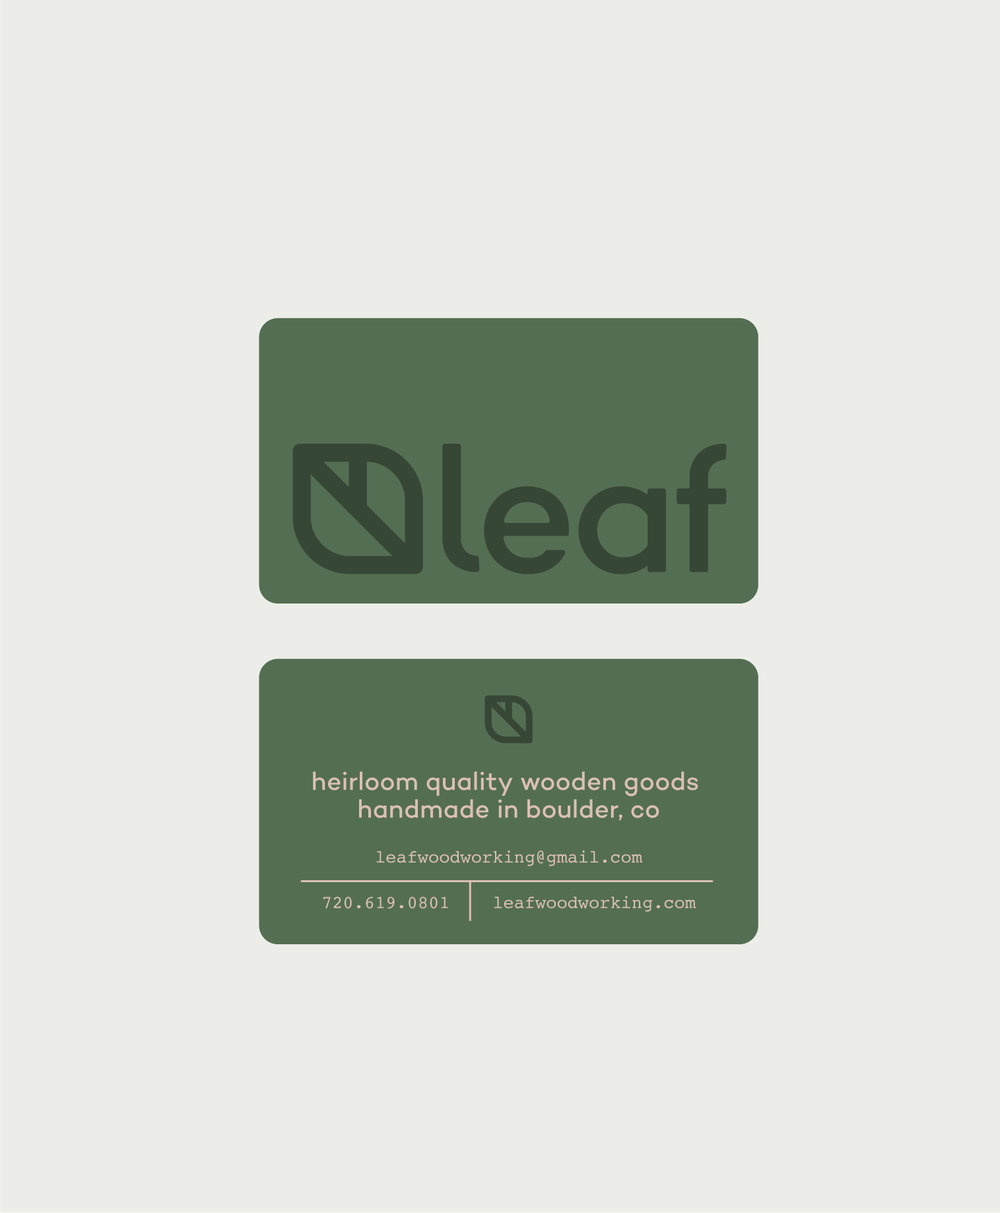 leaf-businesscard.jpg